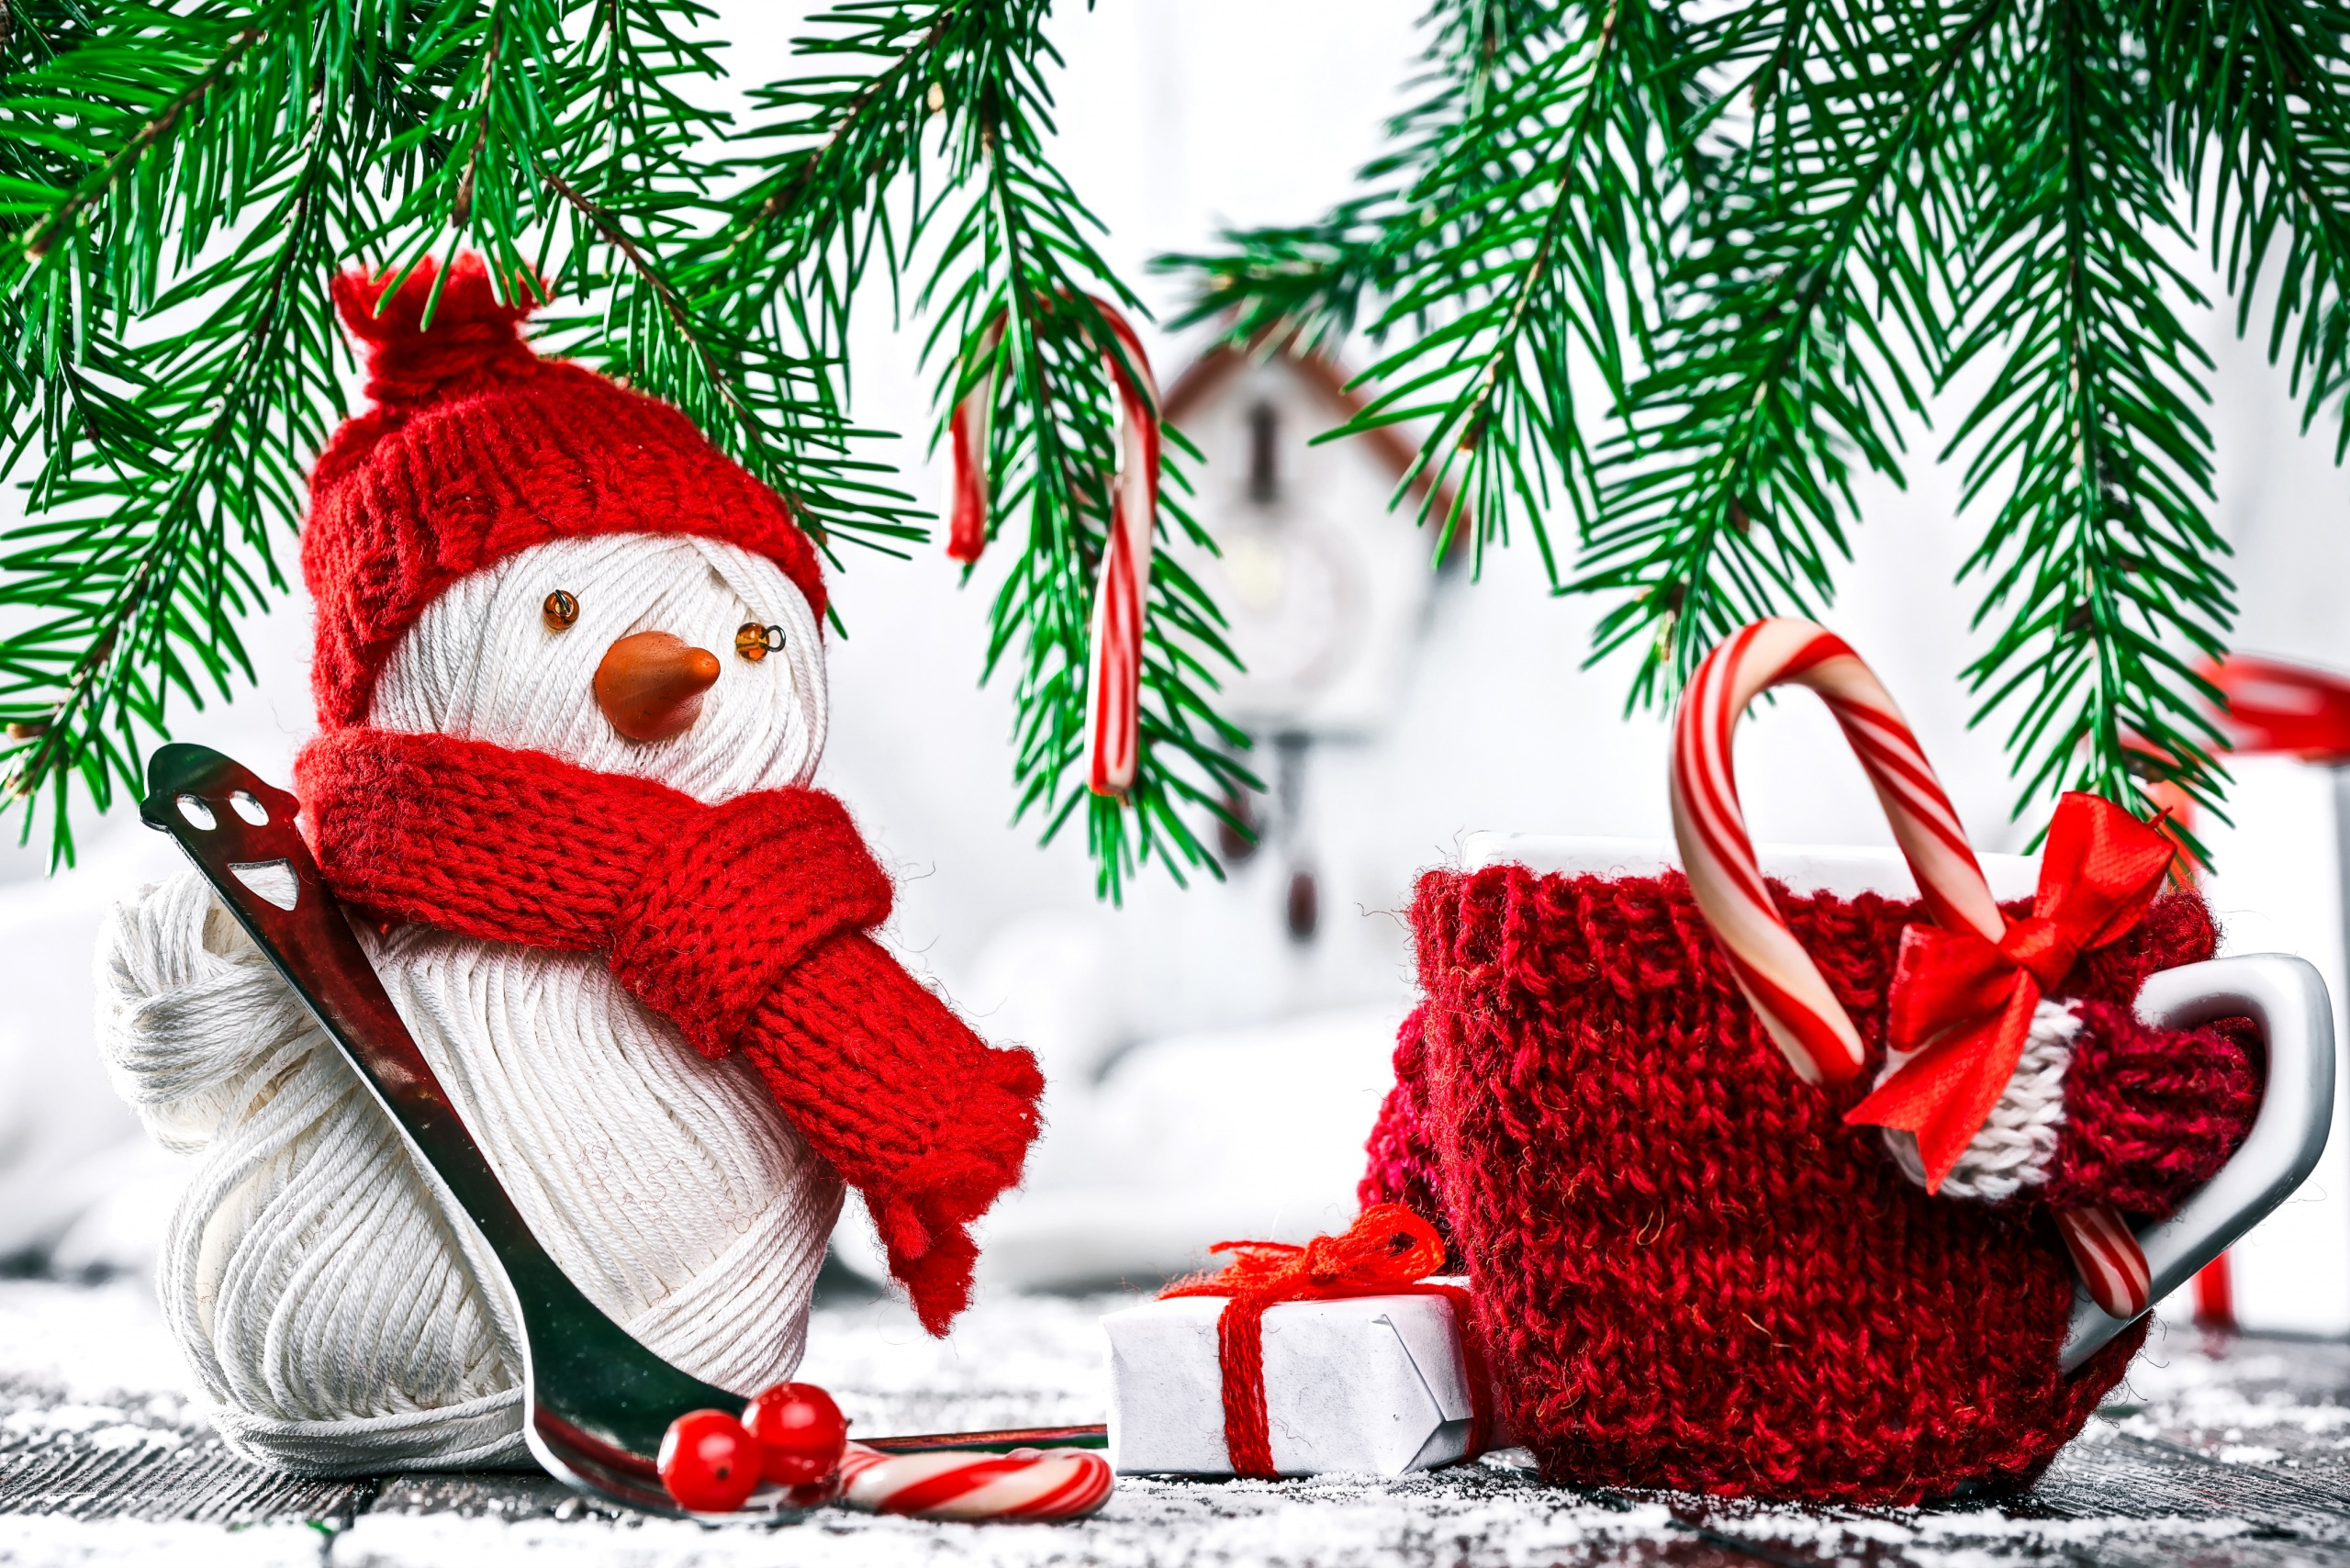 Christmas Snowmen Winter Hat Scarf Cup Gifts 558963 2560x1708